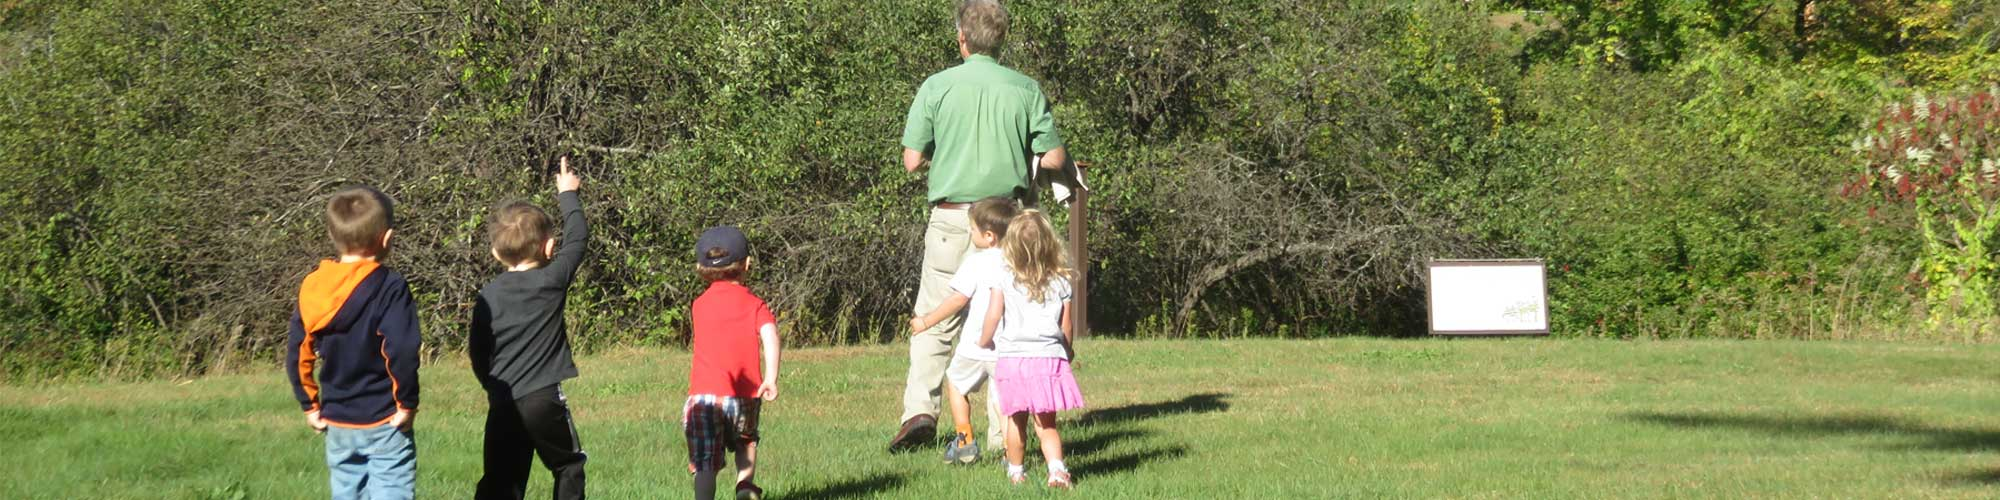 Naturalist walking through field with children